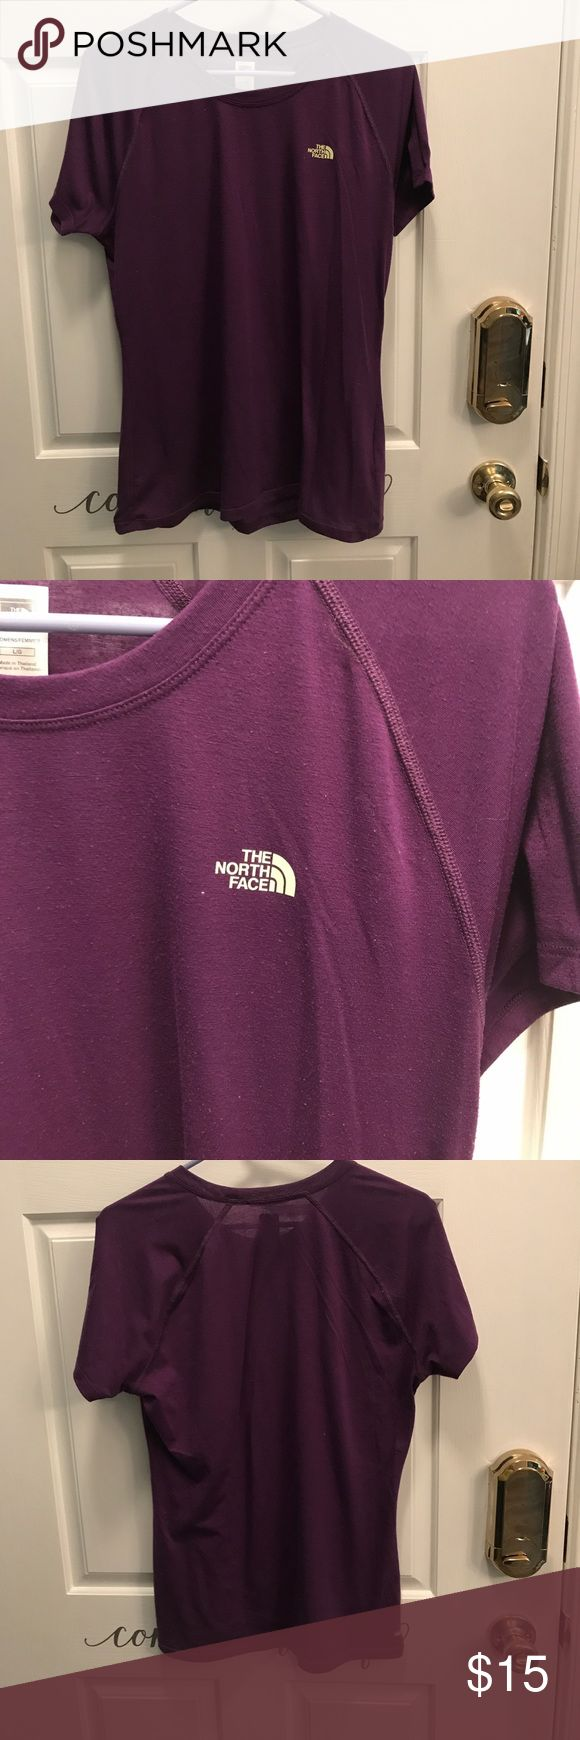 The north Face shirt Vapor wick material. Women's size large. Purple with yellow detail on chest. EUC The North Face Tops Tees - Short Sleeve